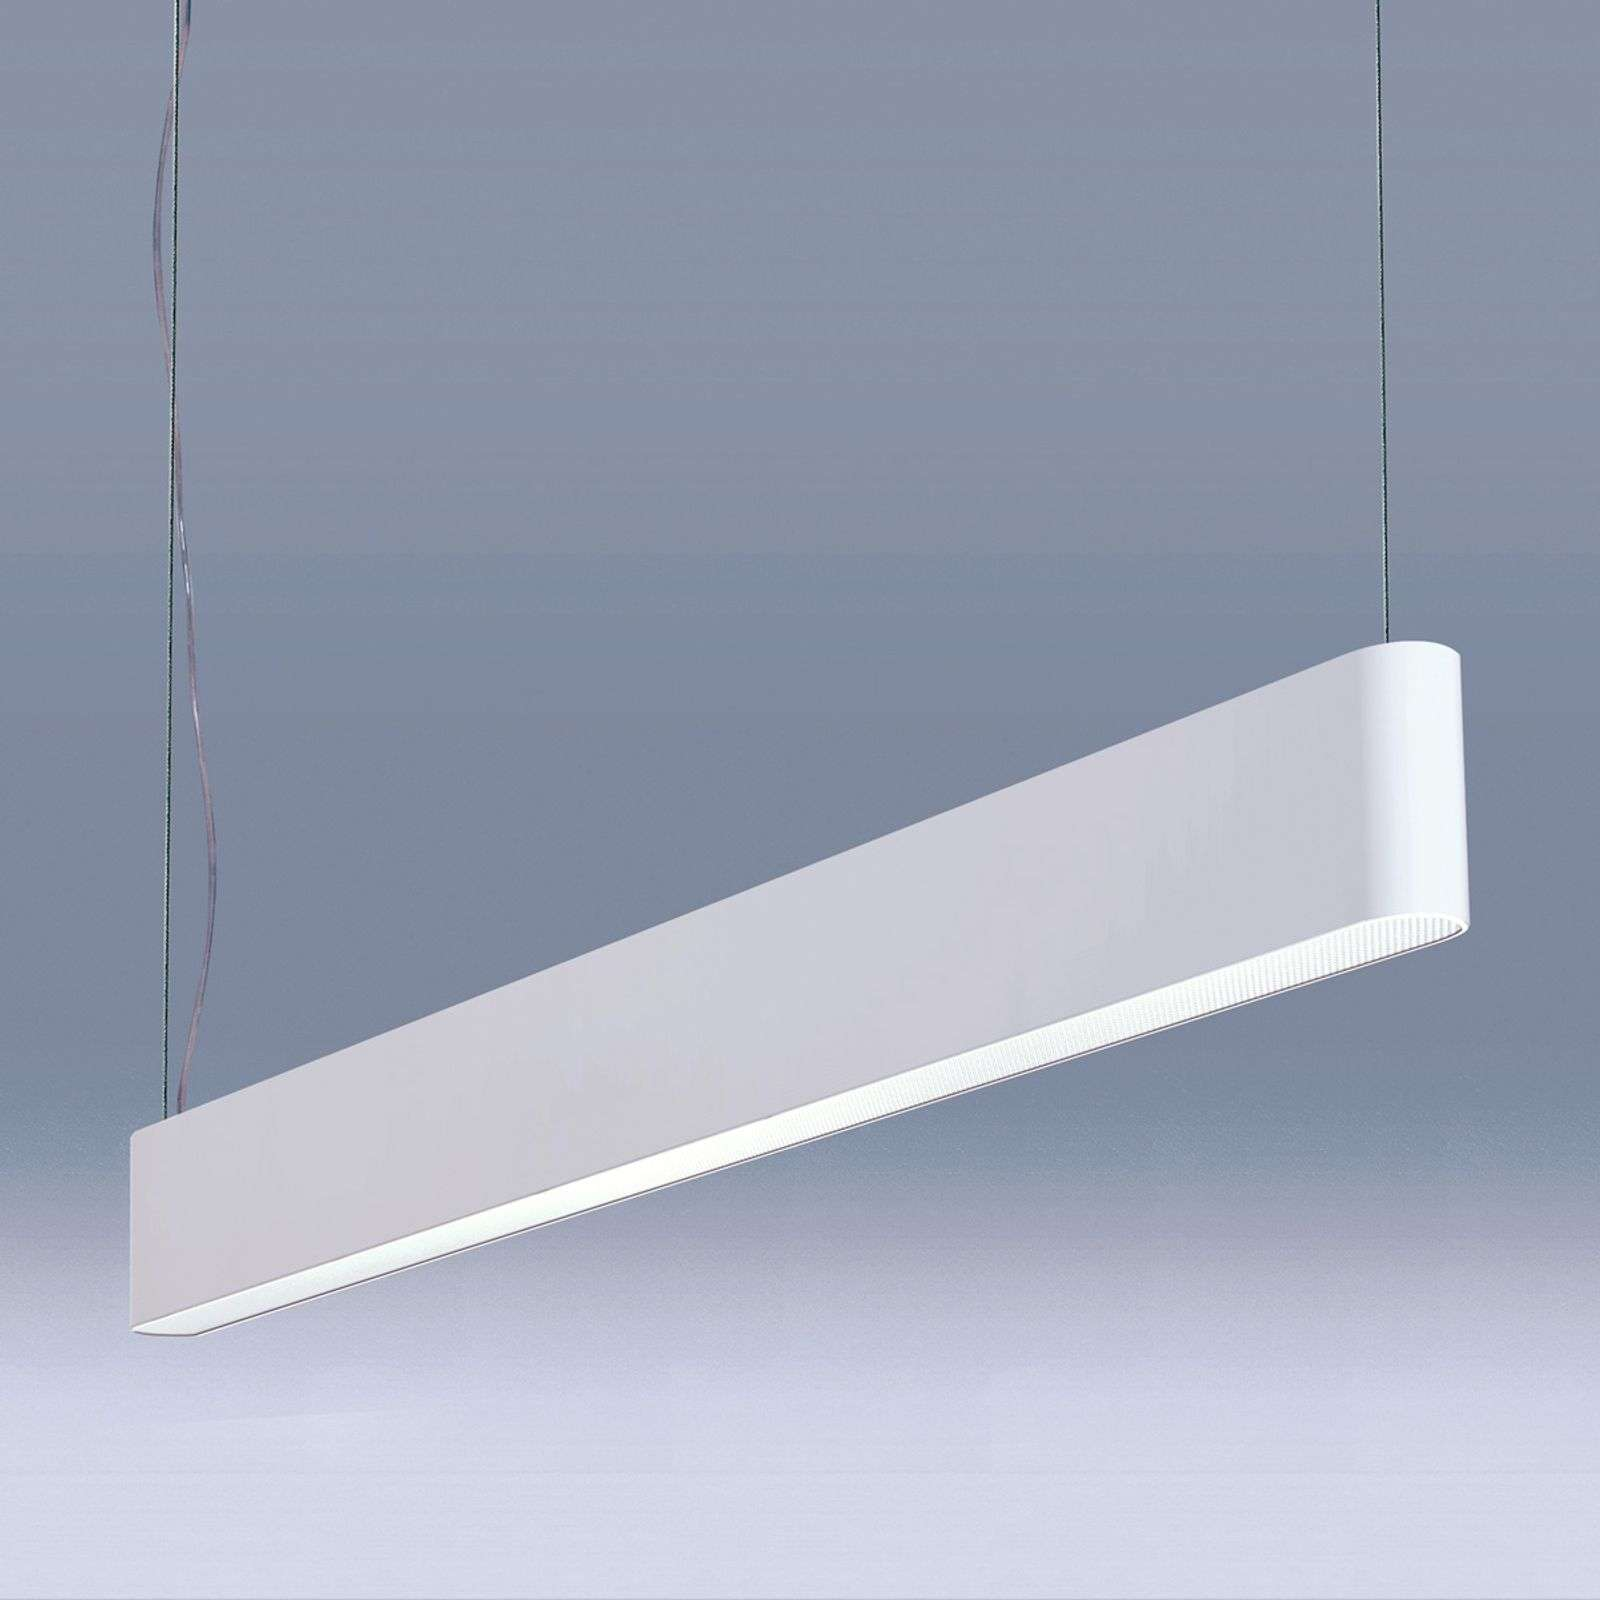 Suspension LED Caleo-P4 blanche - 89 cm 48 W